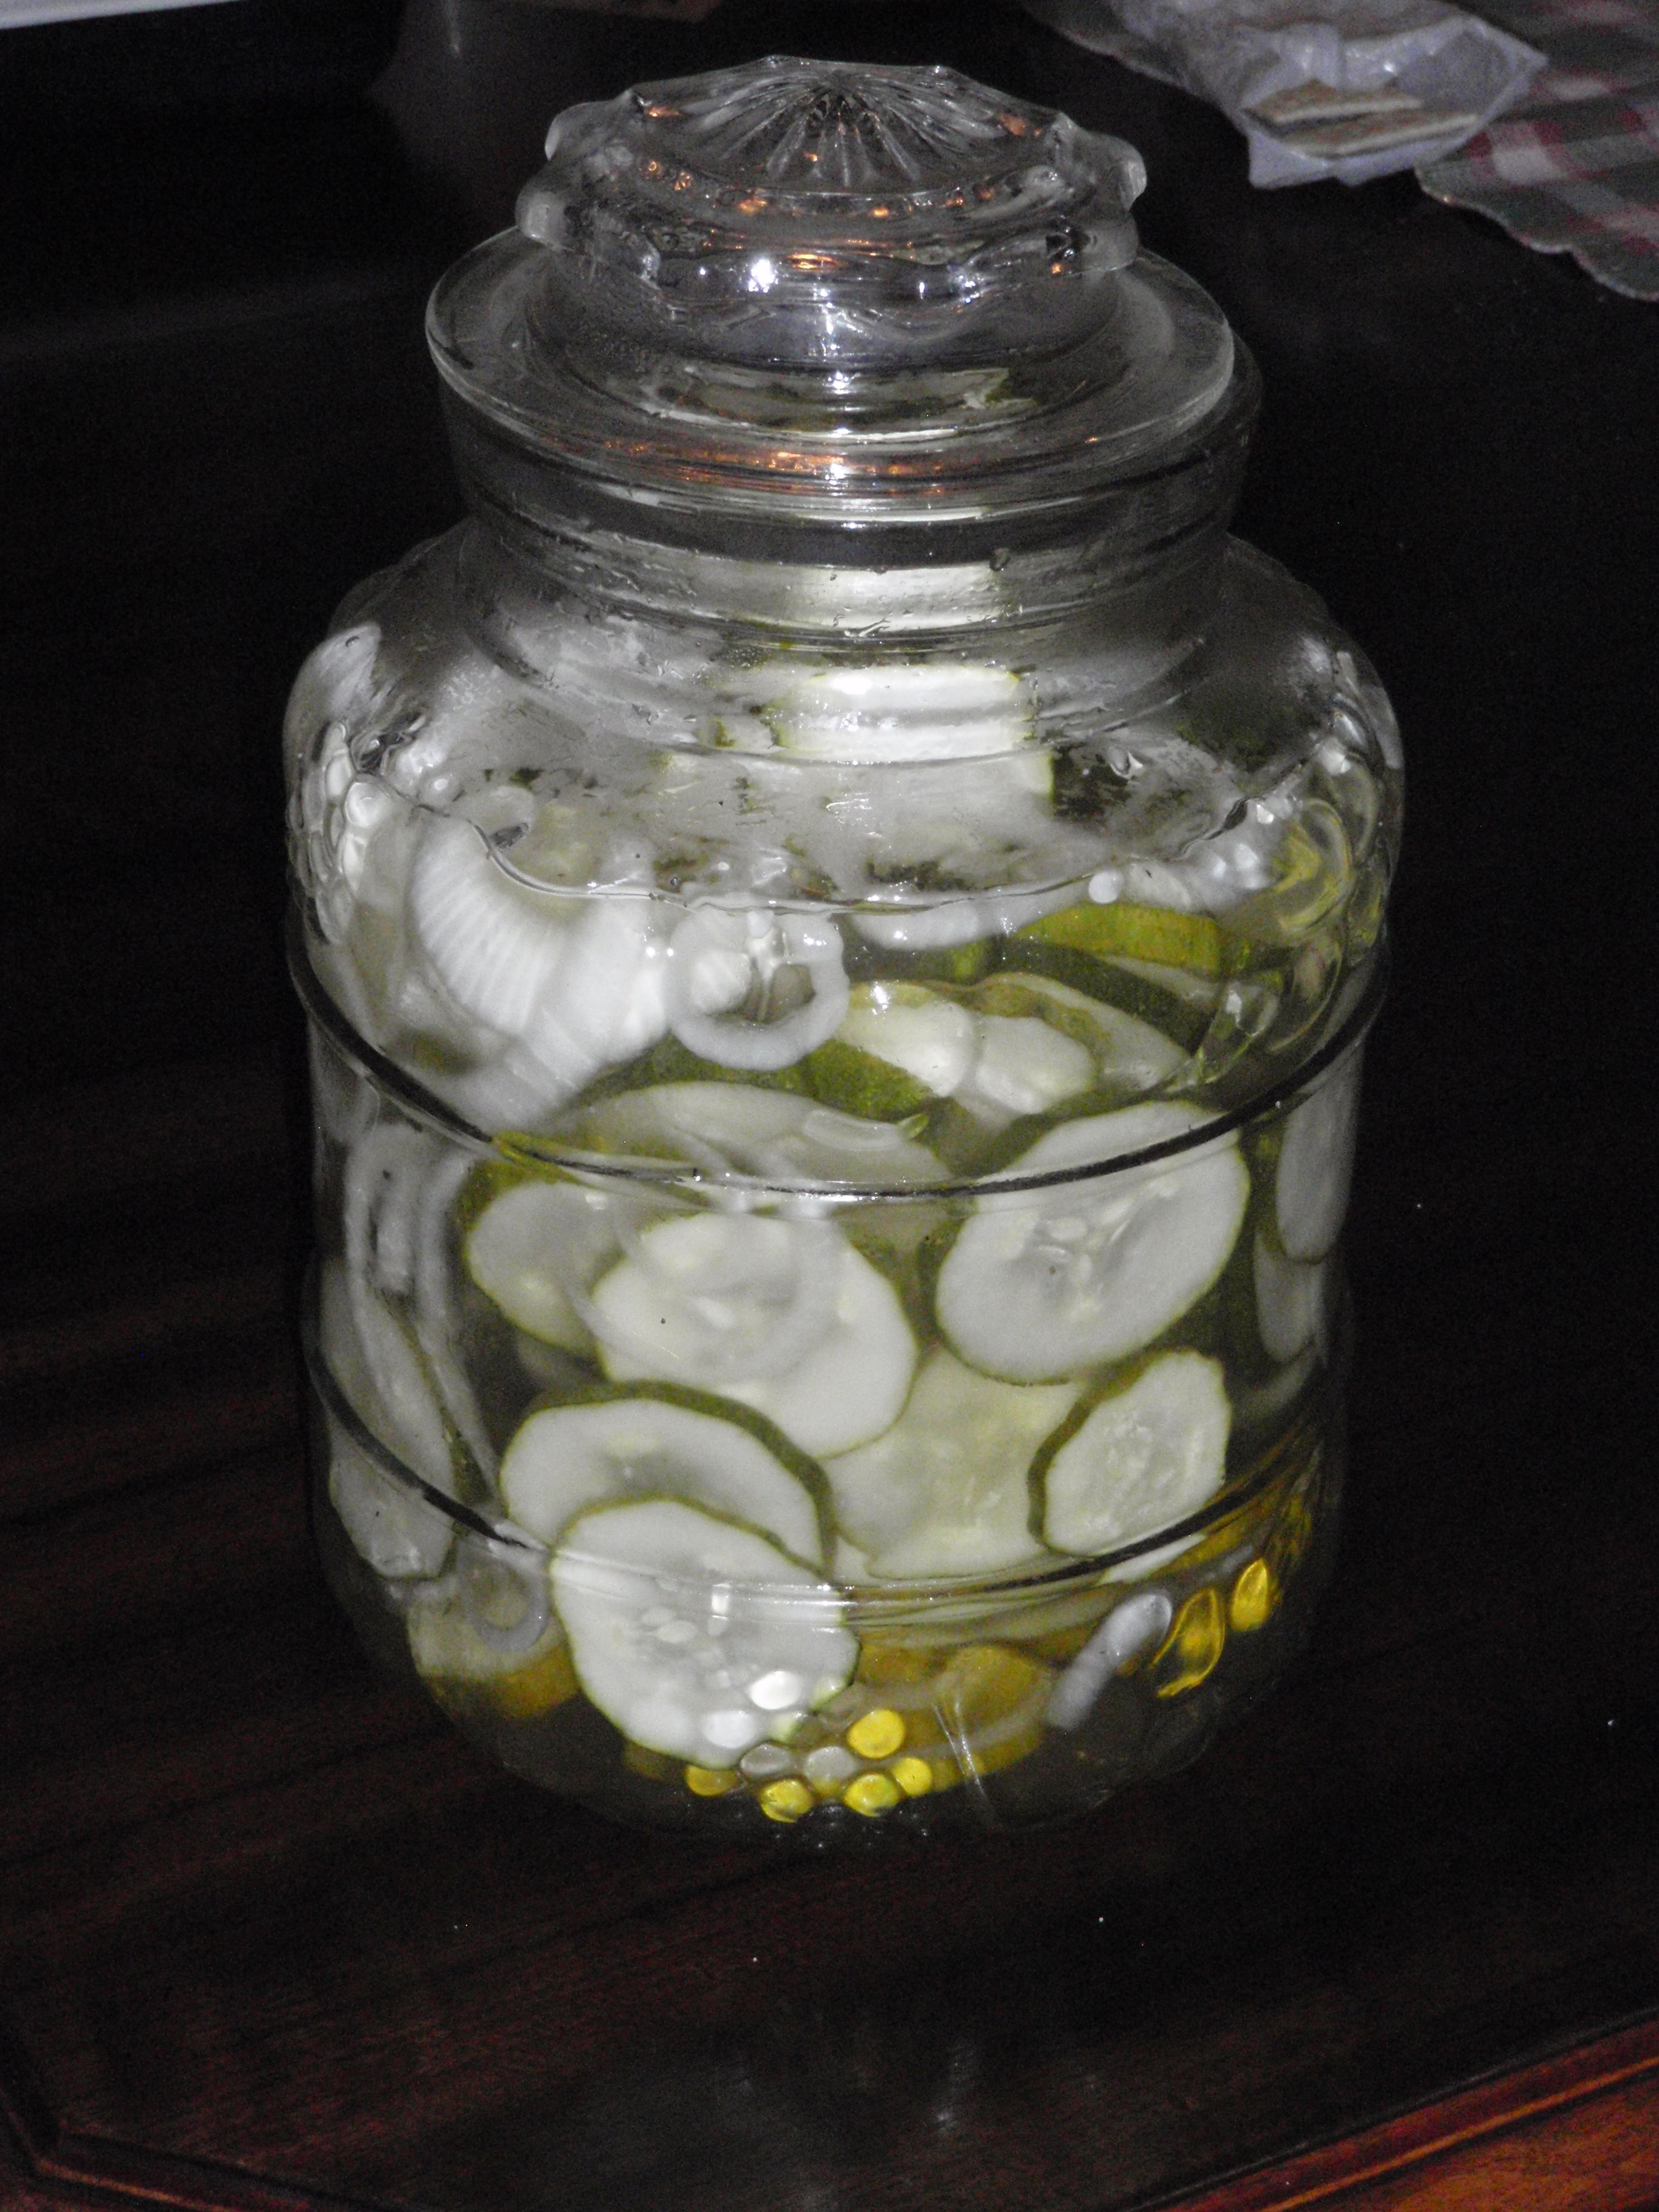 Icebox Pickles 6 Cups Sliced Unpeeled Cucumbers 1 Cup